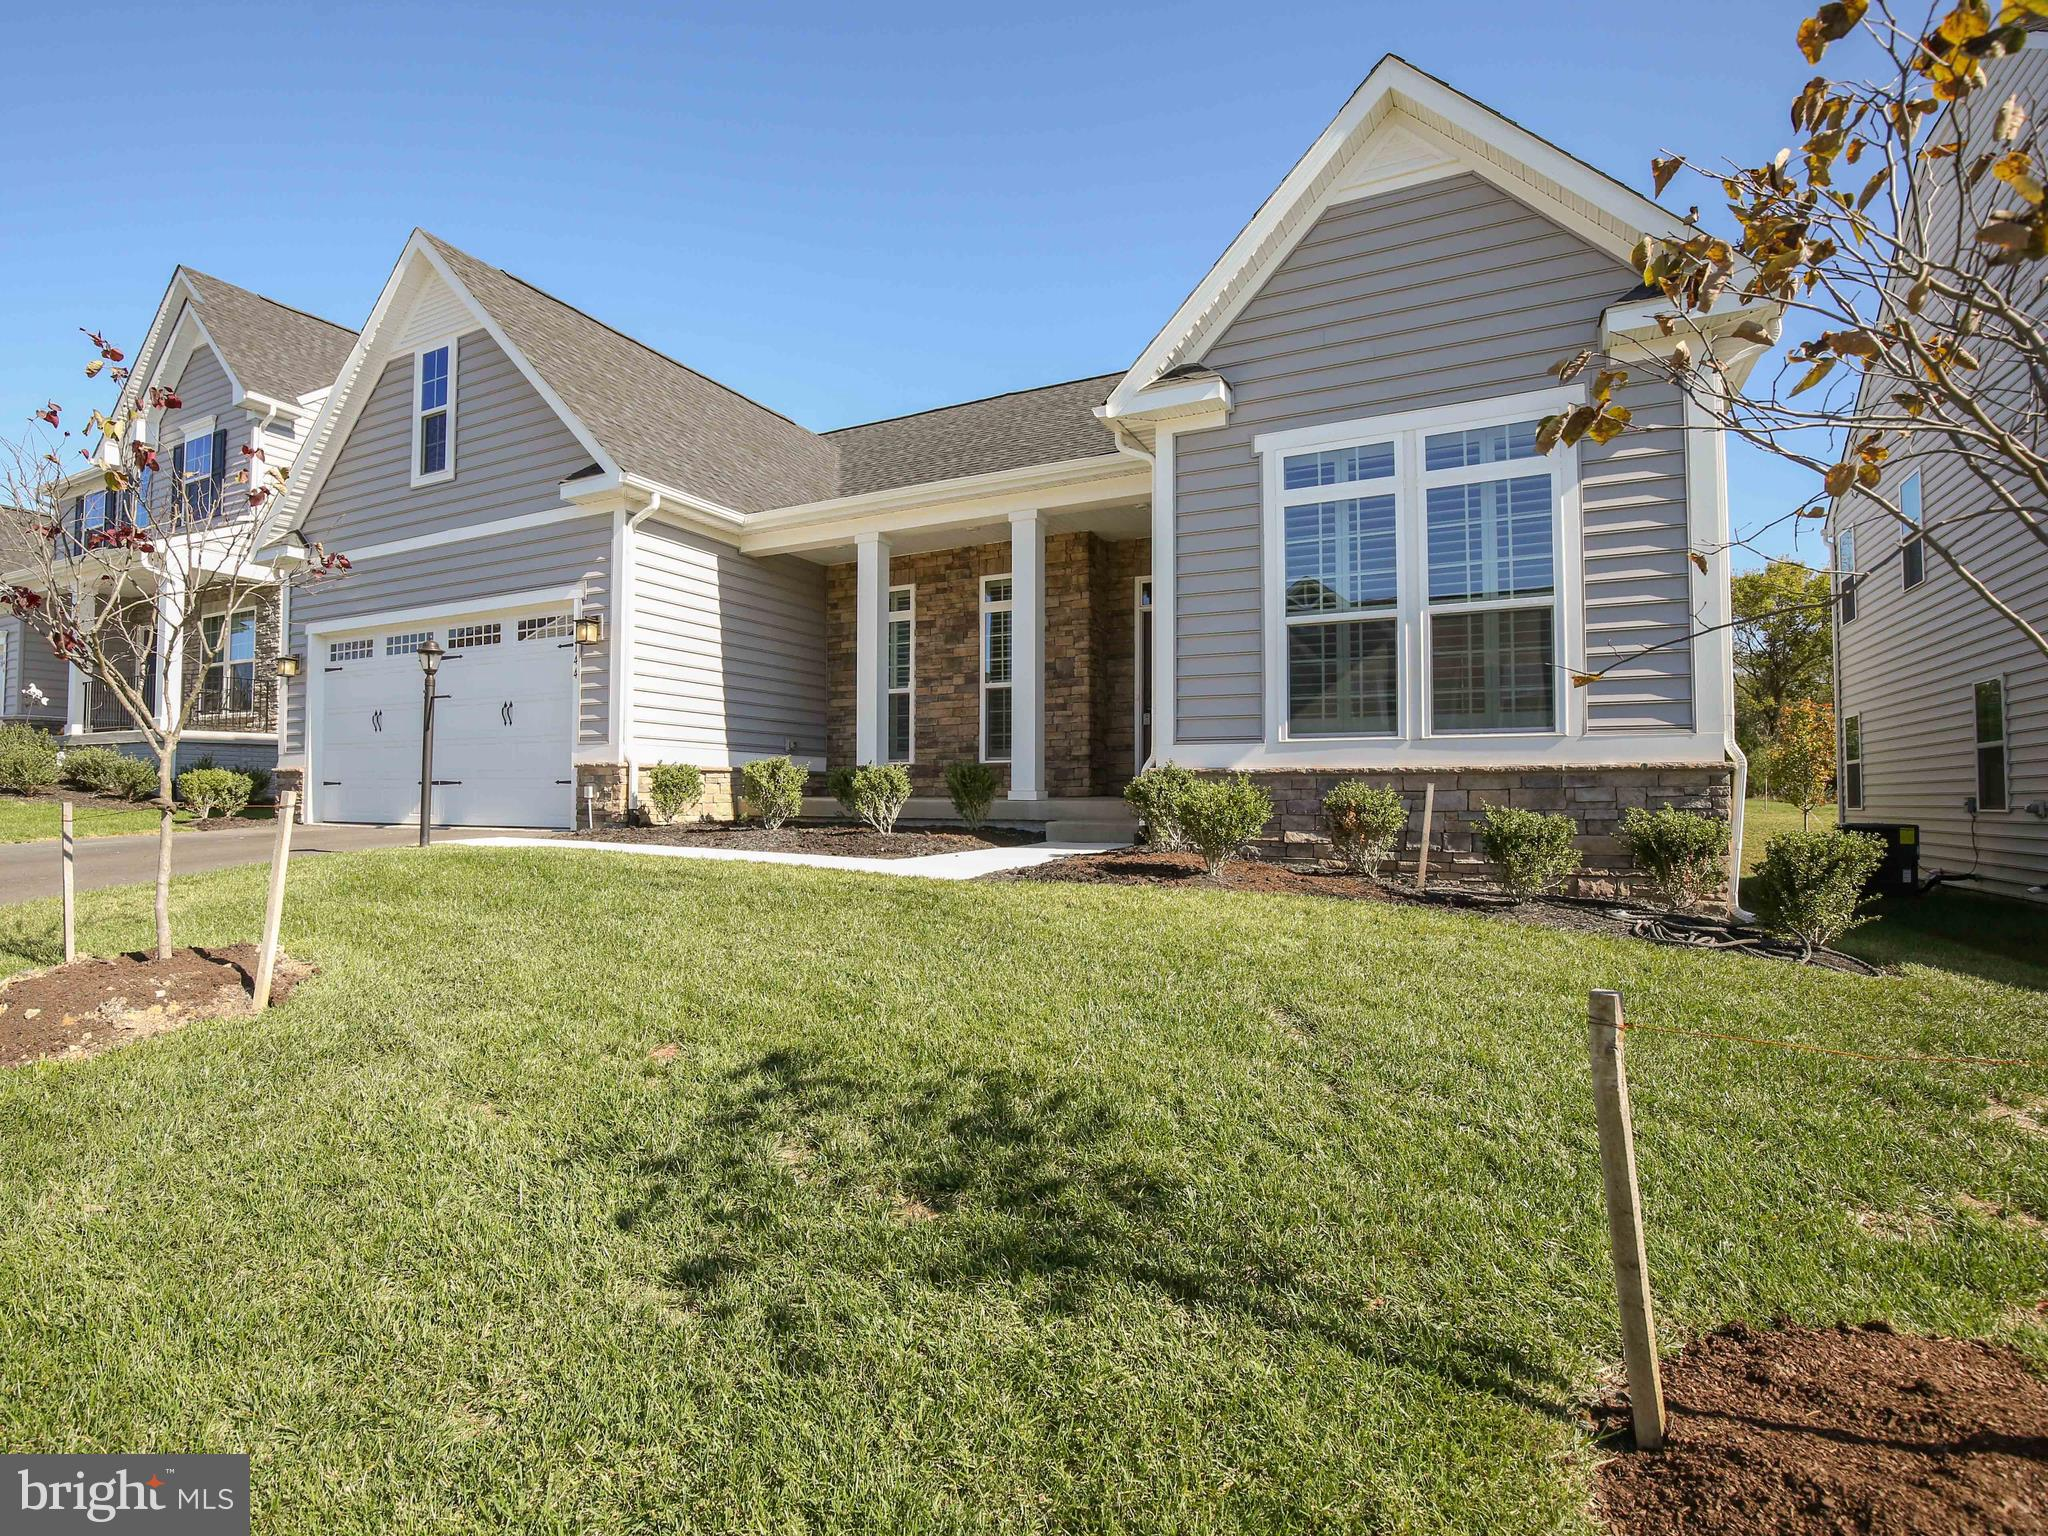 Pristine Home, Move-in ready with beautiful open floor plan punctuated by sparkling hardwood that re